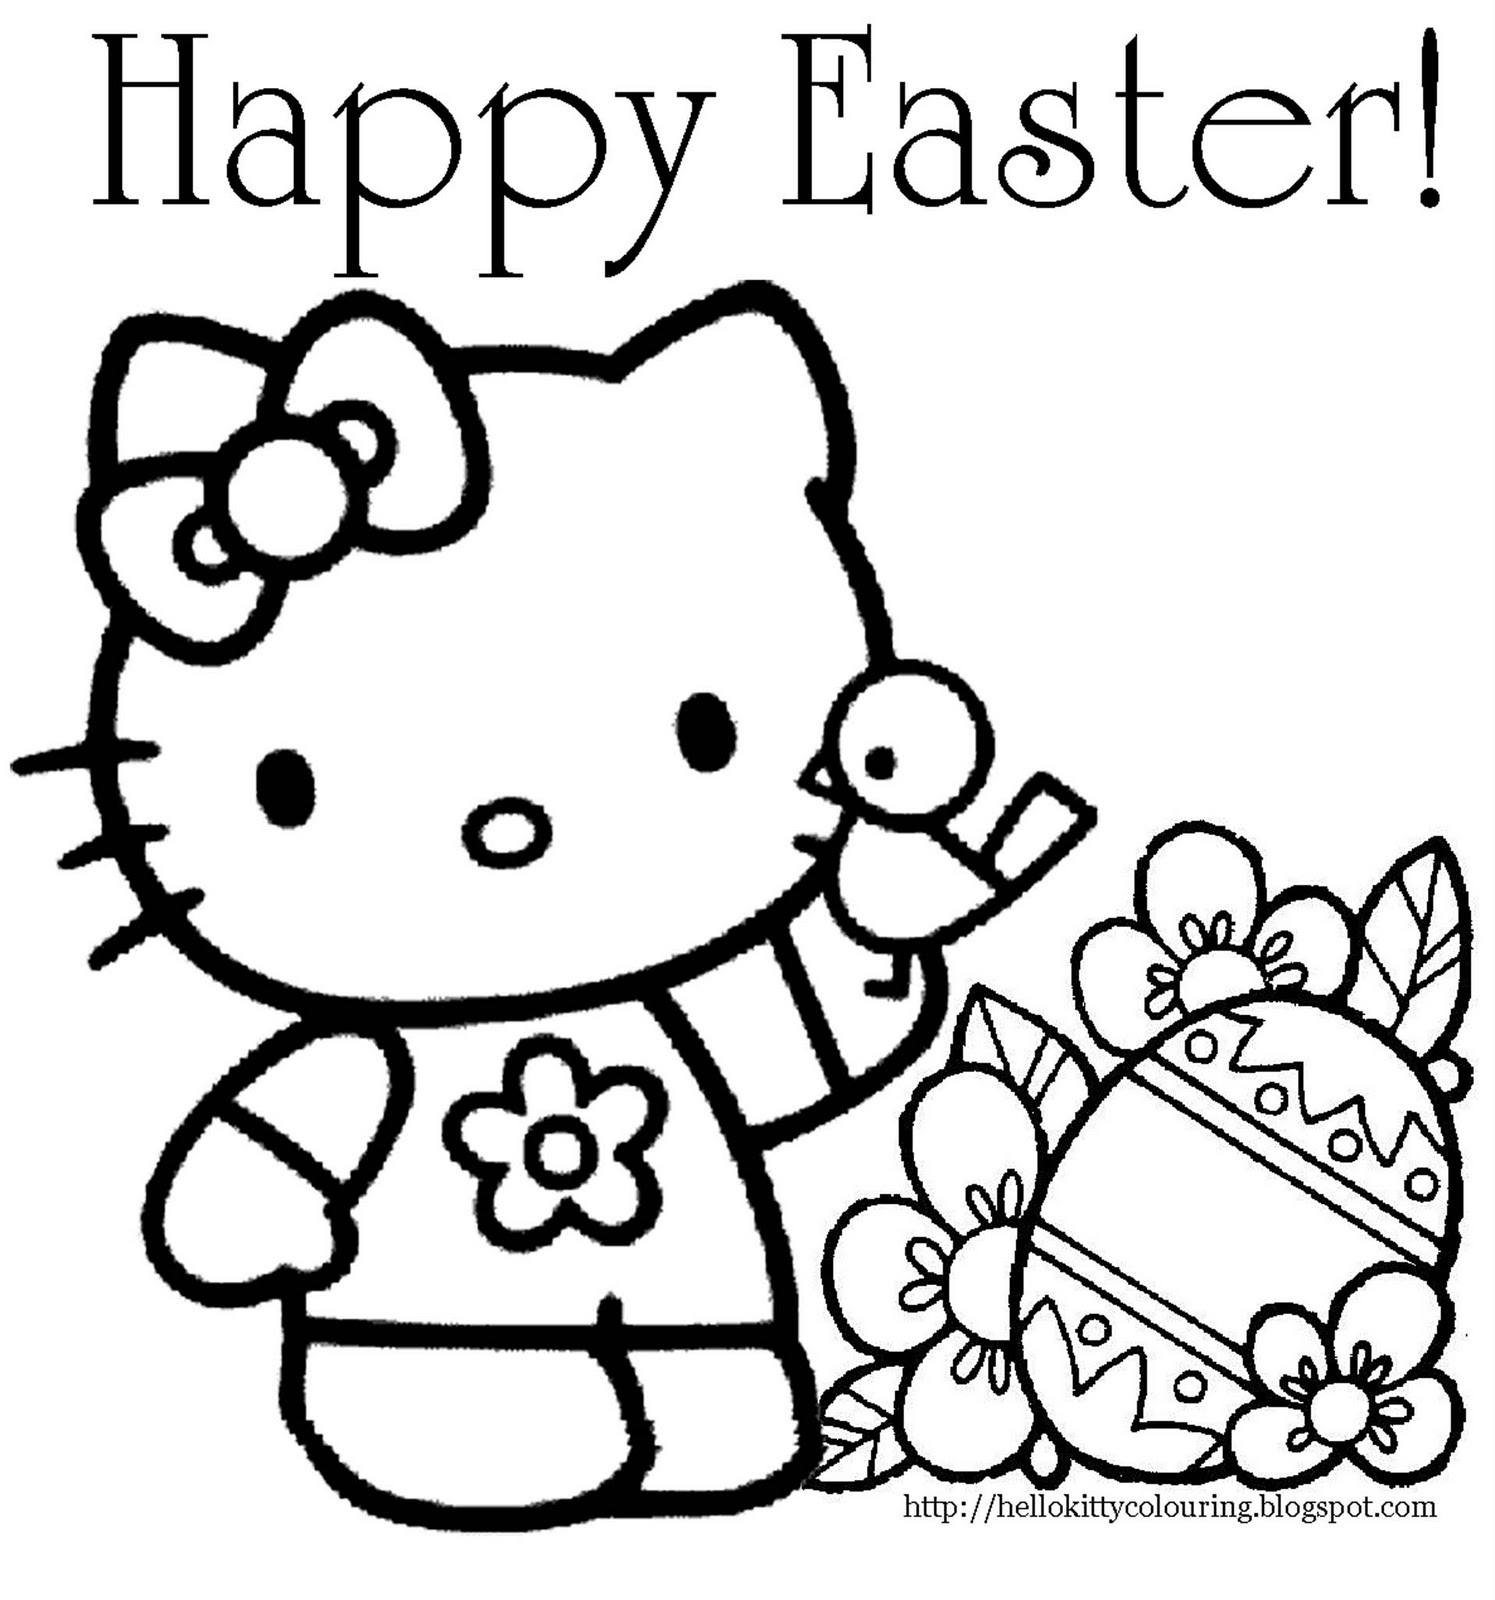 Easter Colouring Miscellaneous Easter Colouring Pages Coloring Pages Easter